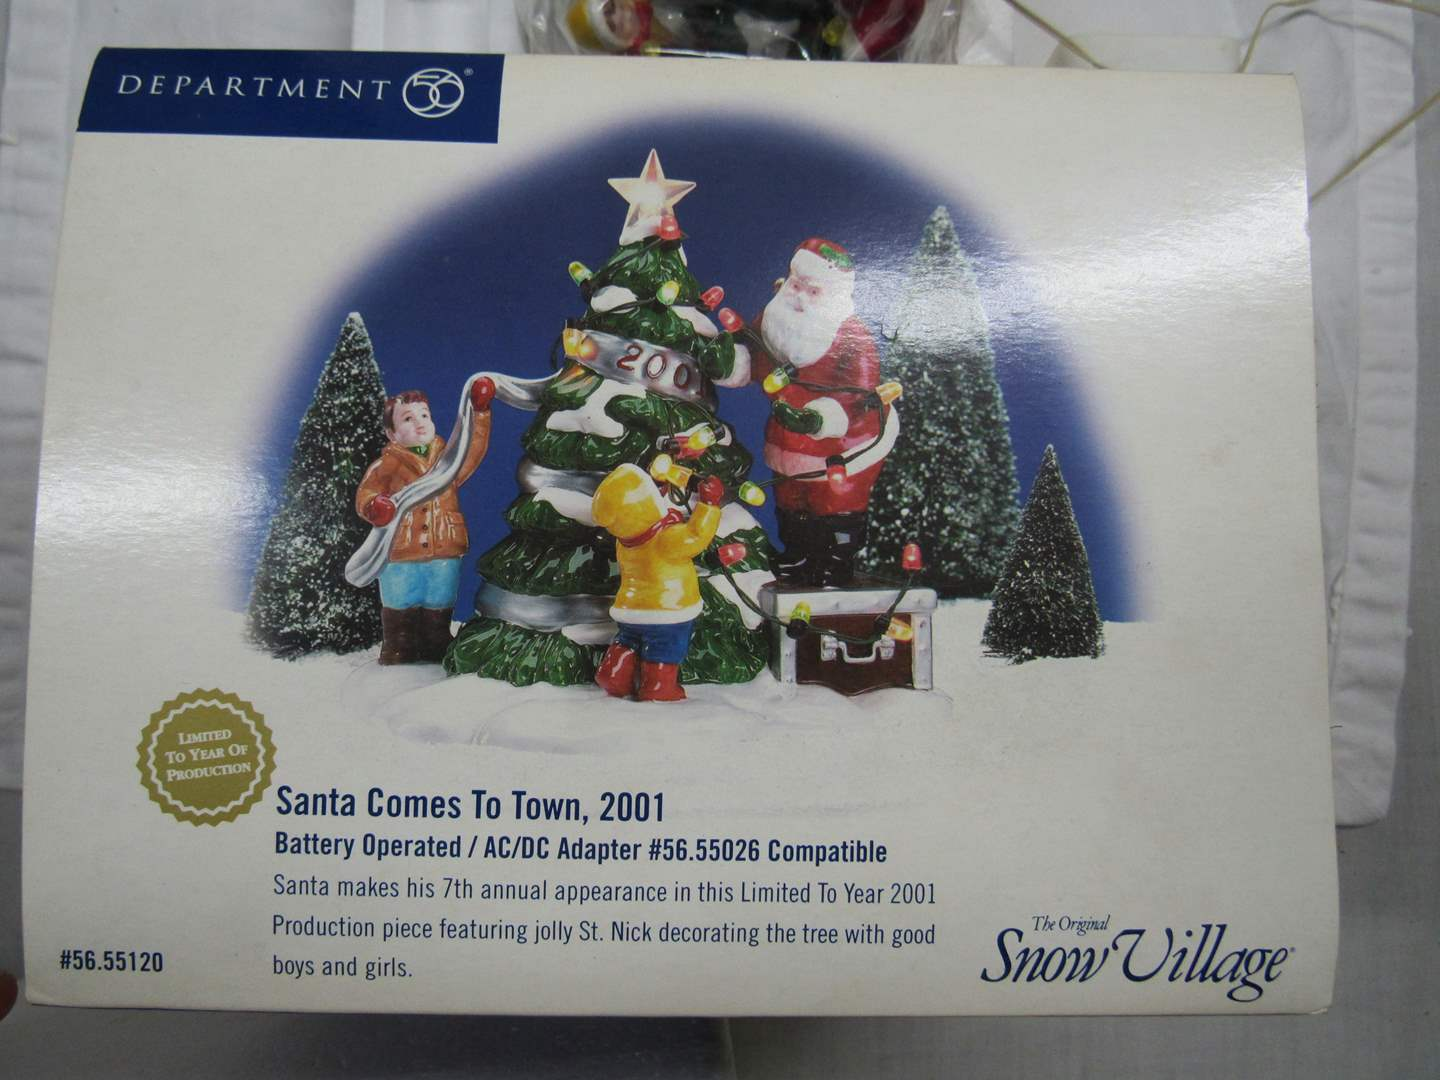 """Lot # 40 Dept 56 Snow Village """"Santa Claus Comes to Town"""" 2001 with AC/DC adapter (main image)"""